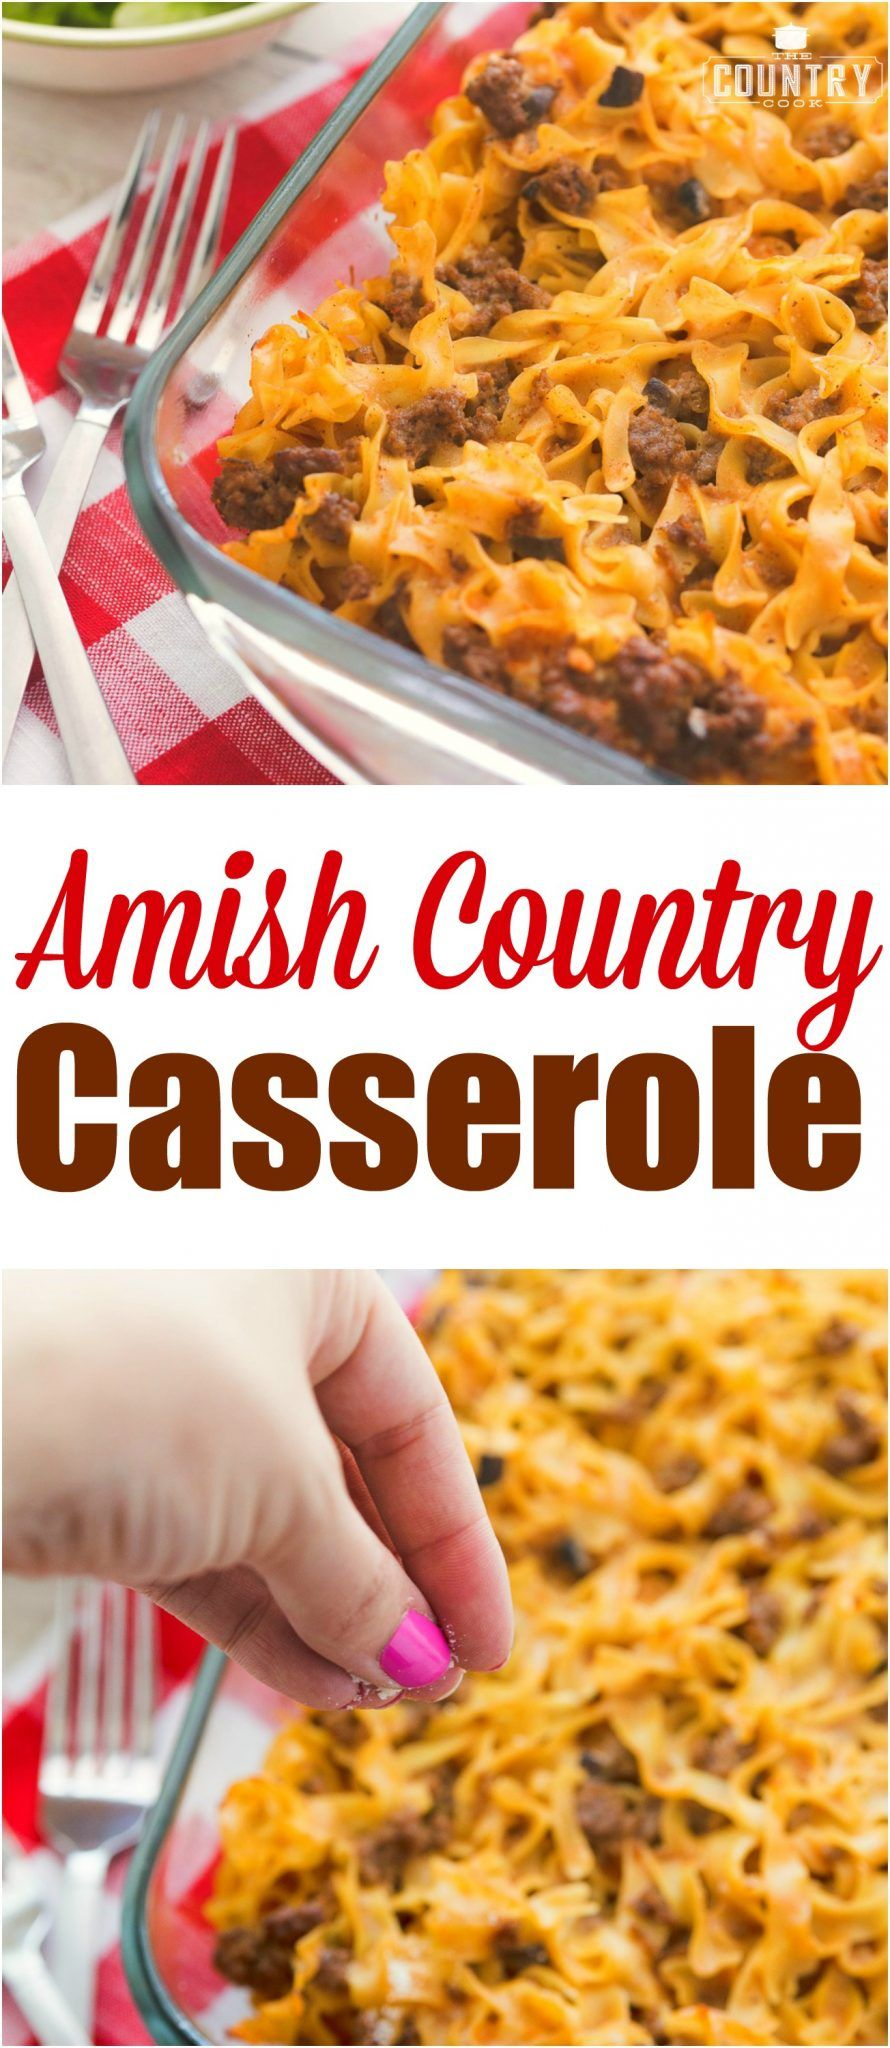 Amish country casserole recipe from the country cook country cook amish country casserole recipe from the country cook forumfinder Gallery